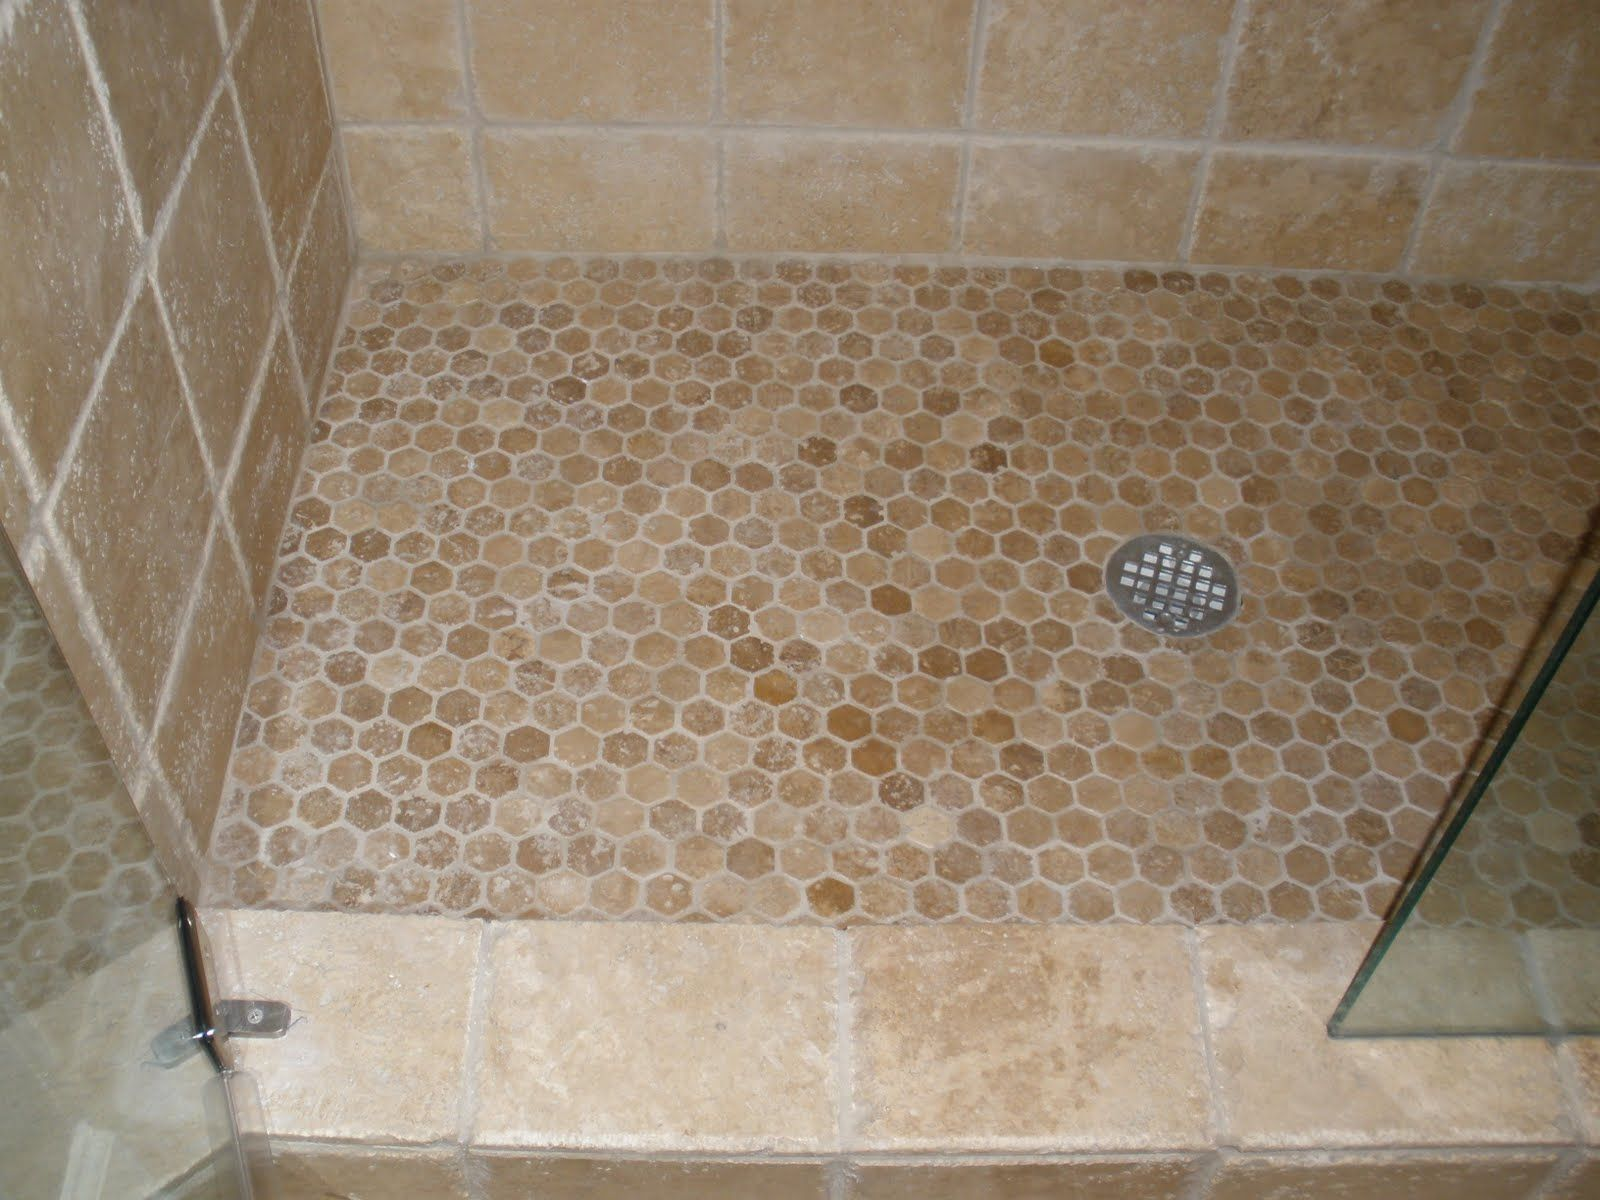 Floor Shower Floor Tile With Design In Bathroom And Best Tile